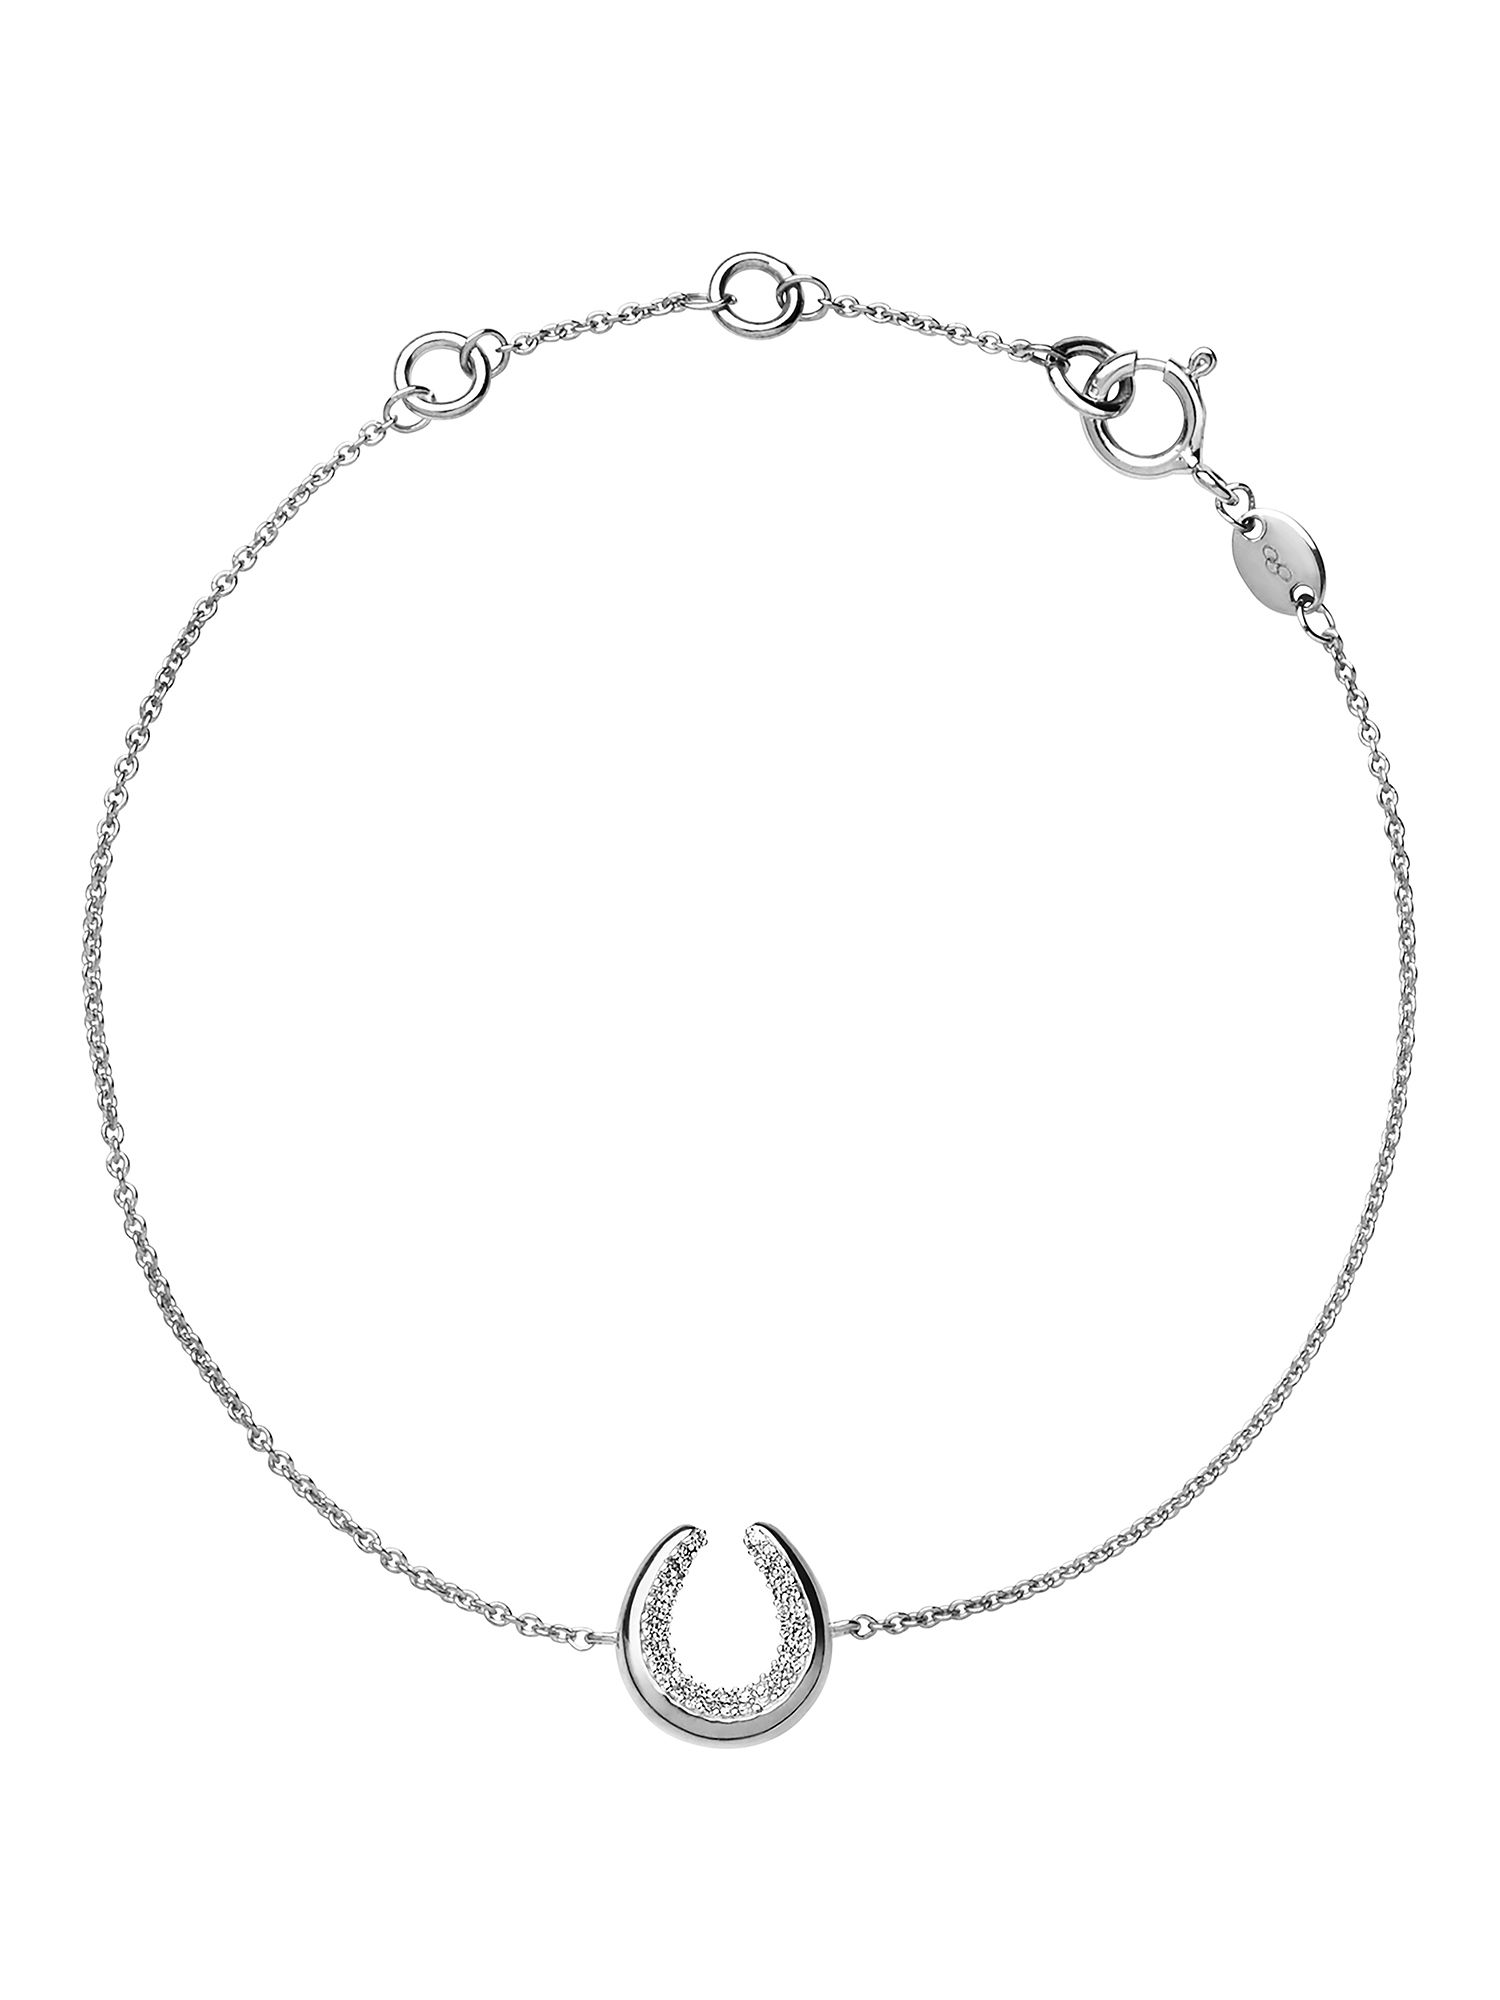 Links of London Ascot Sterling Silver Horseshoe Bracelet, Silver